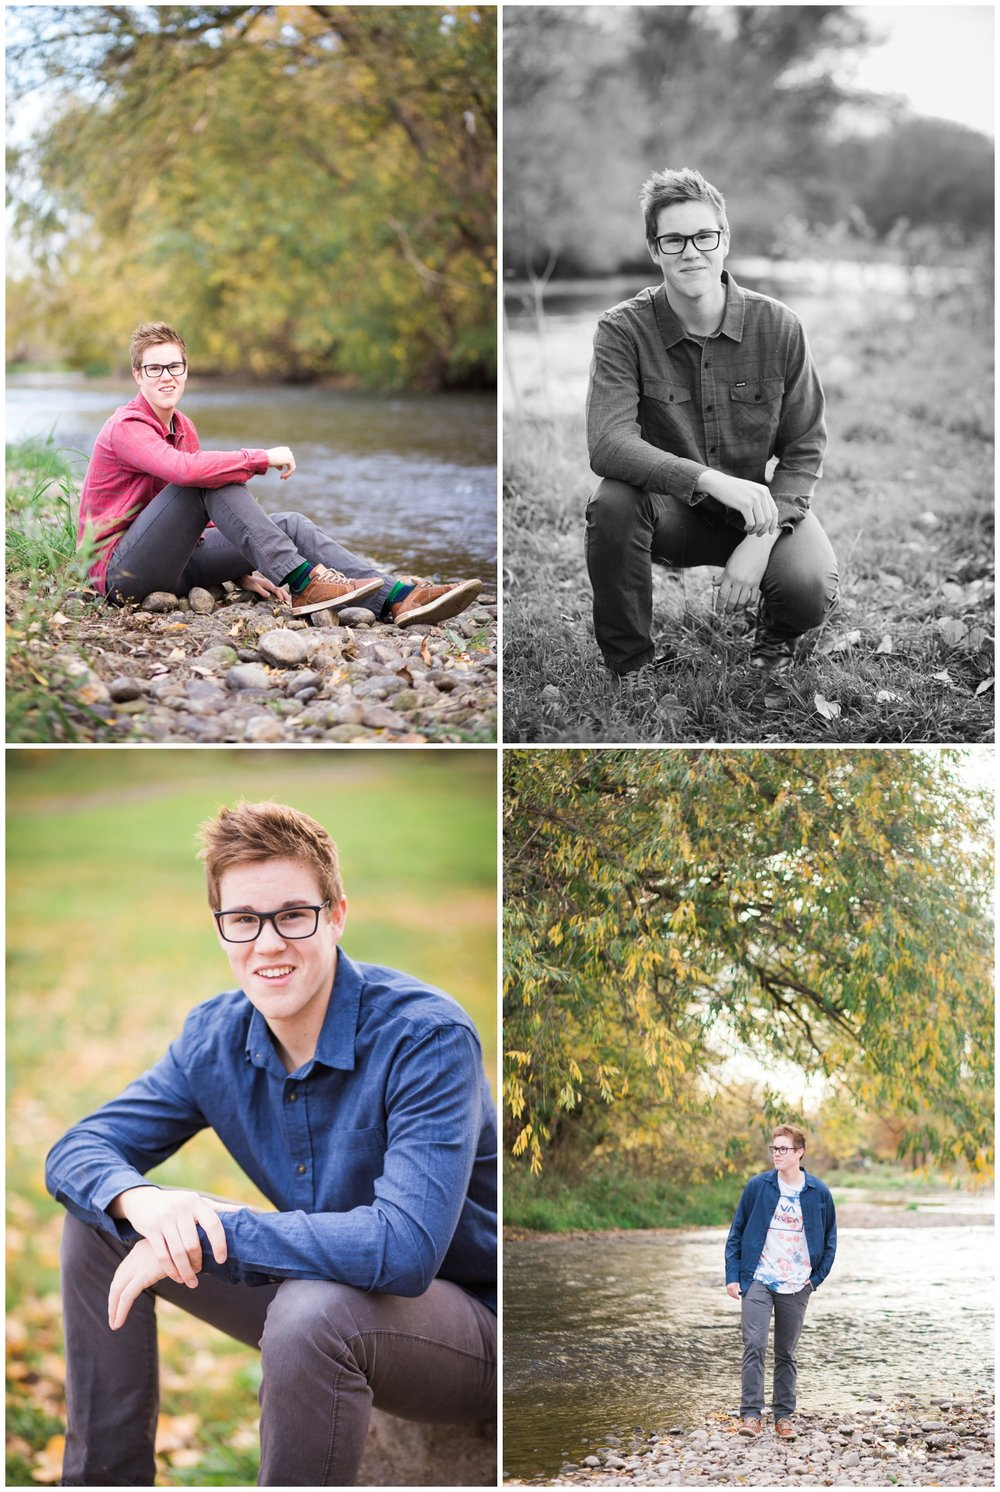 Outdoor portraits taken by Portland Senior Photographer